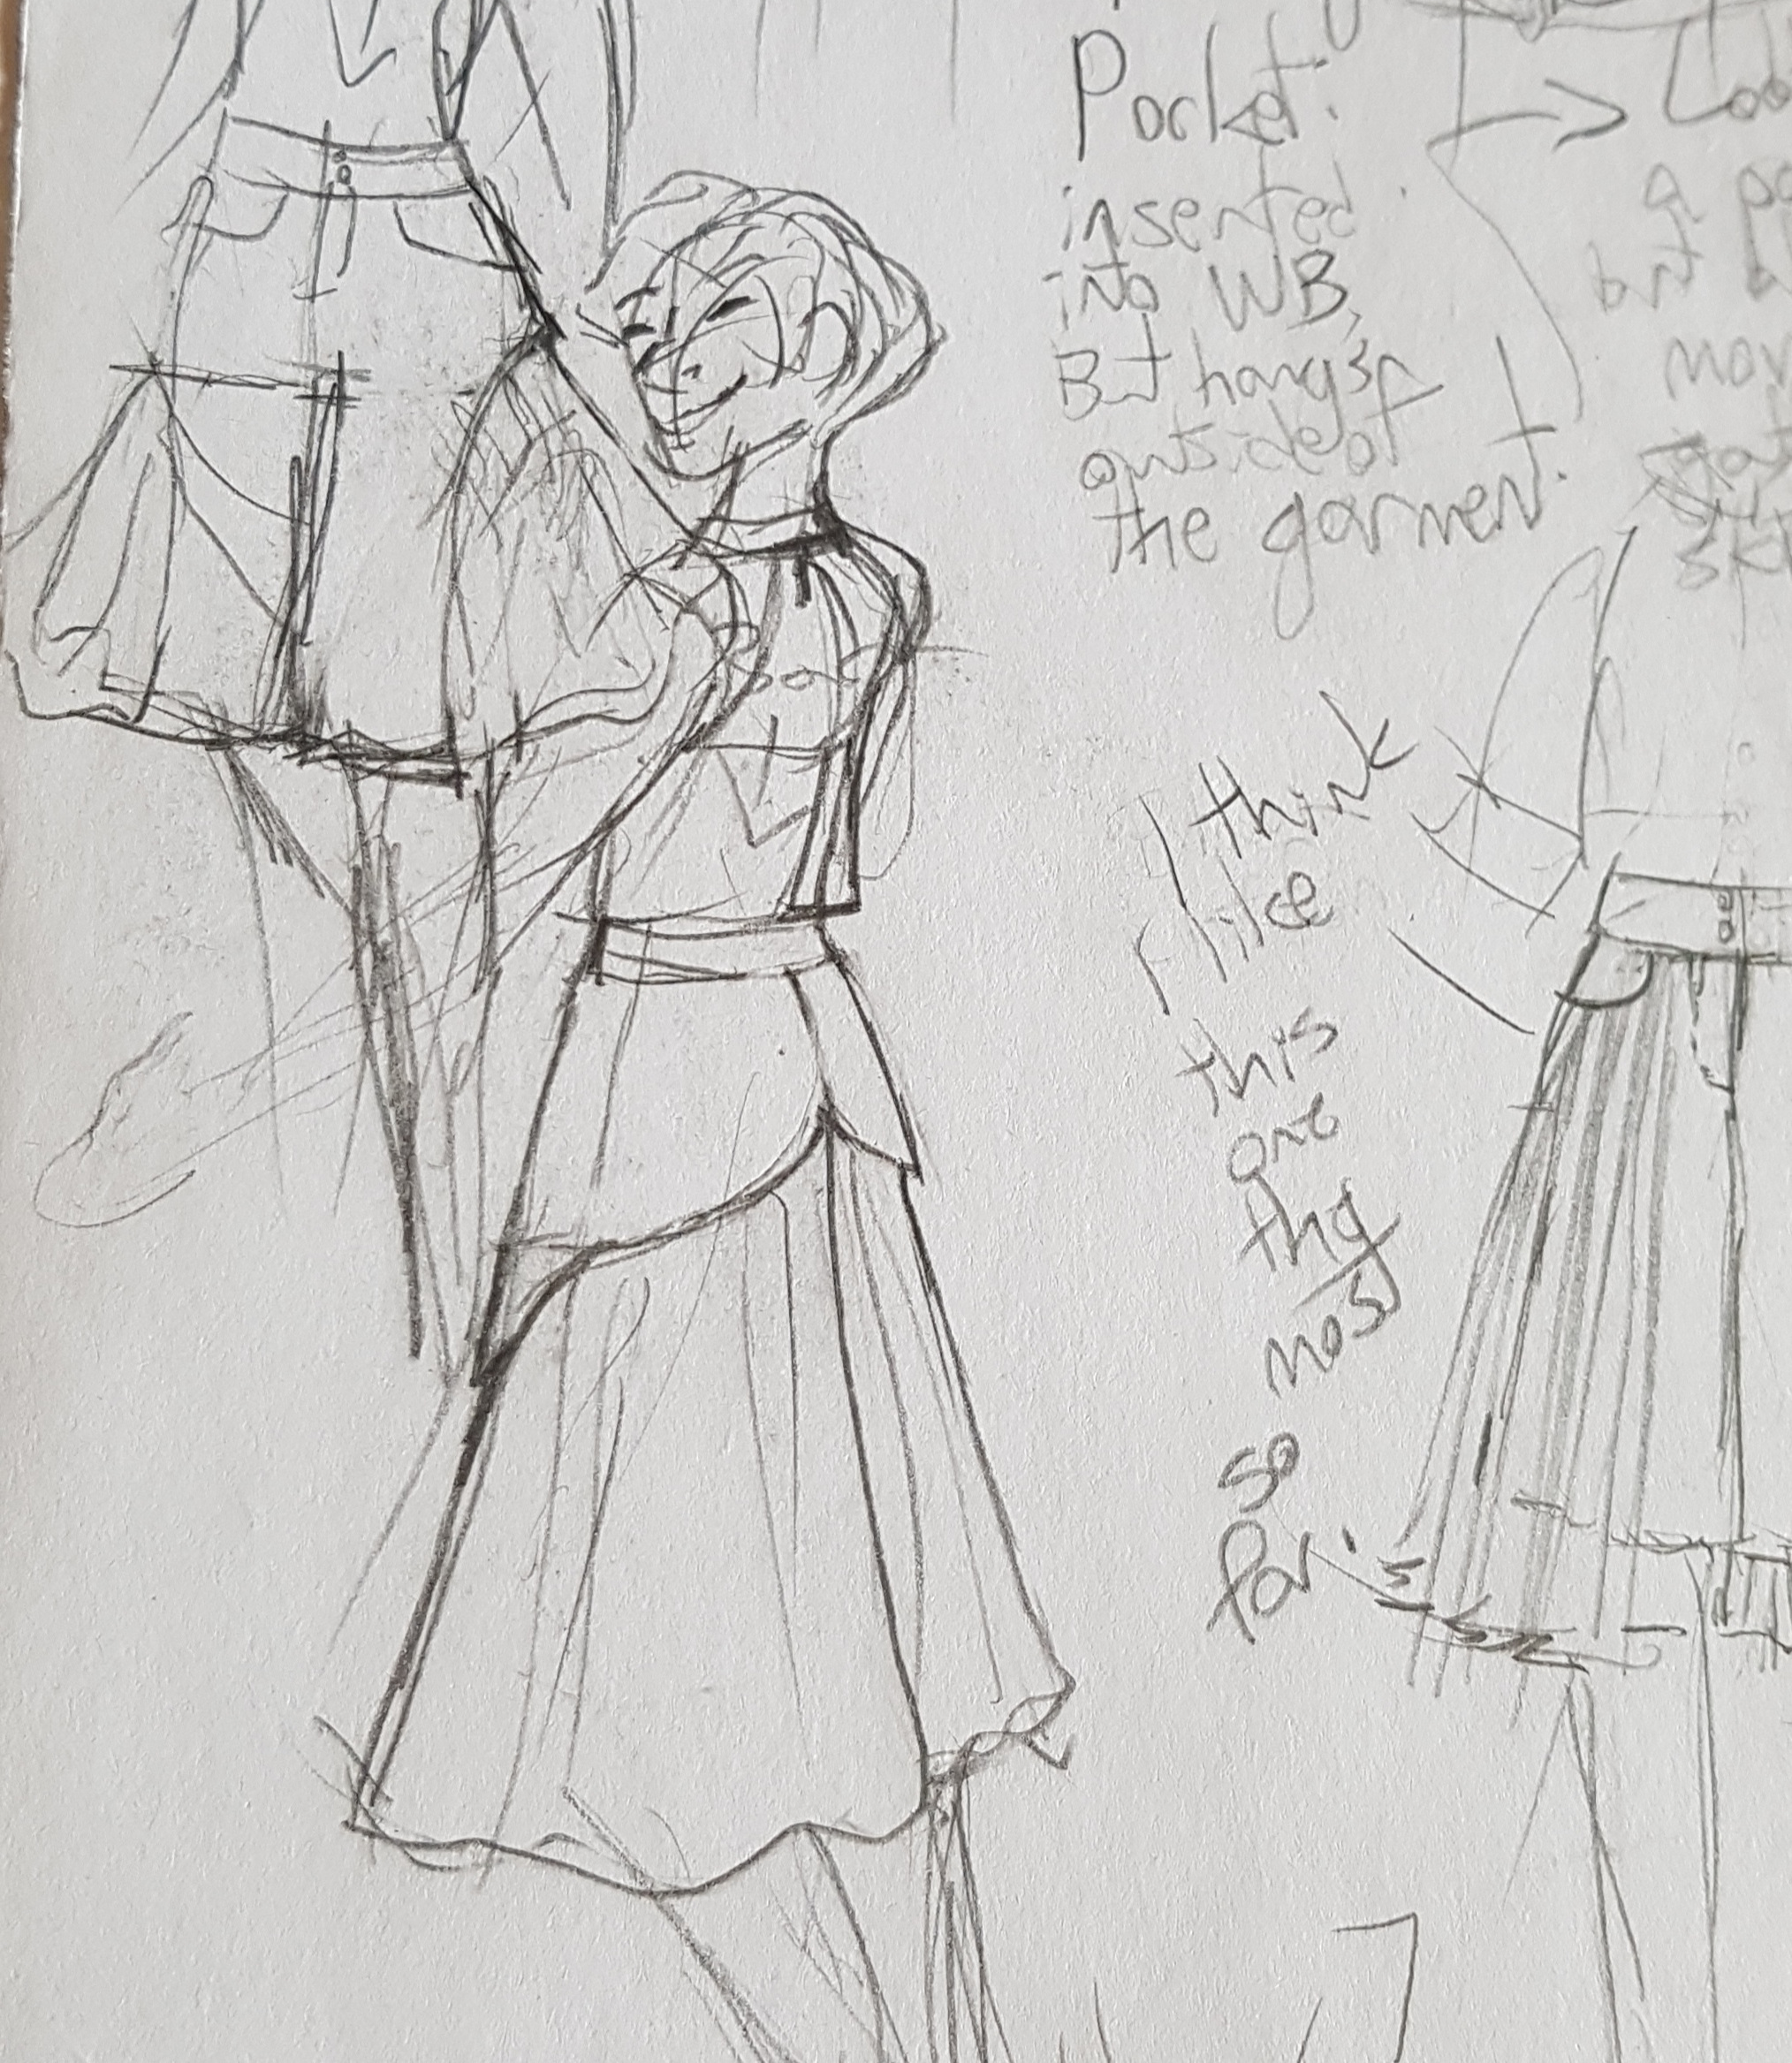 Caption: an excerpt from my sketchbook, with other sketches of shorts/culottes. Each sketch involves fullness in the legs to mimic a skirt.